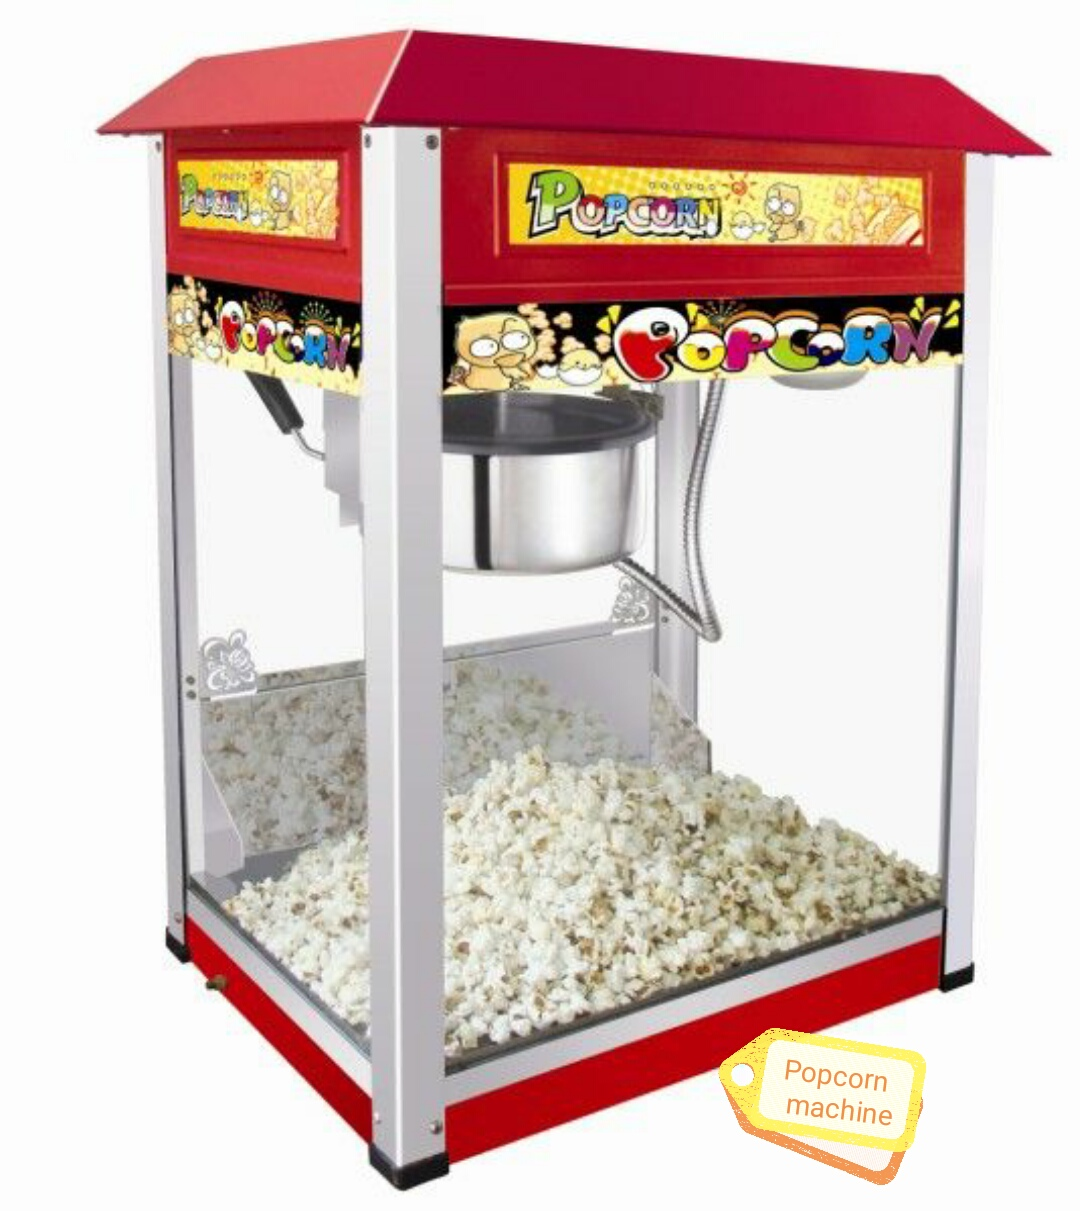 TECHNICIAN FOR POPCORN AND CANDY FLOSS MACHINE